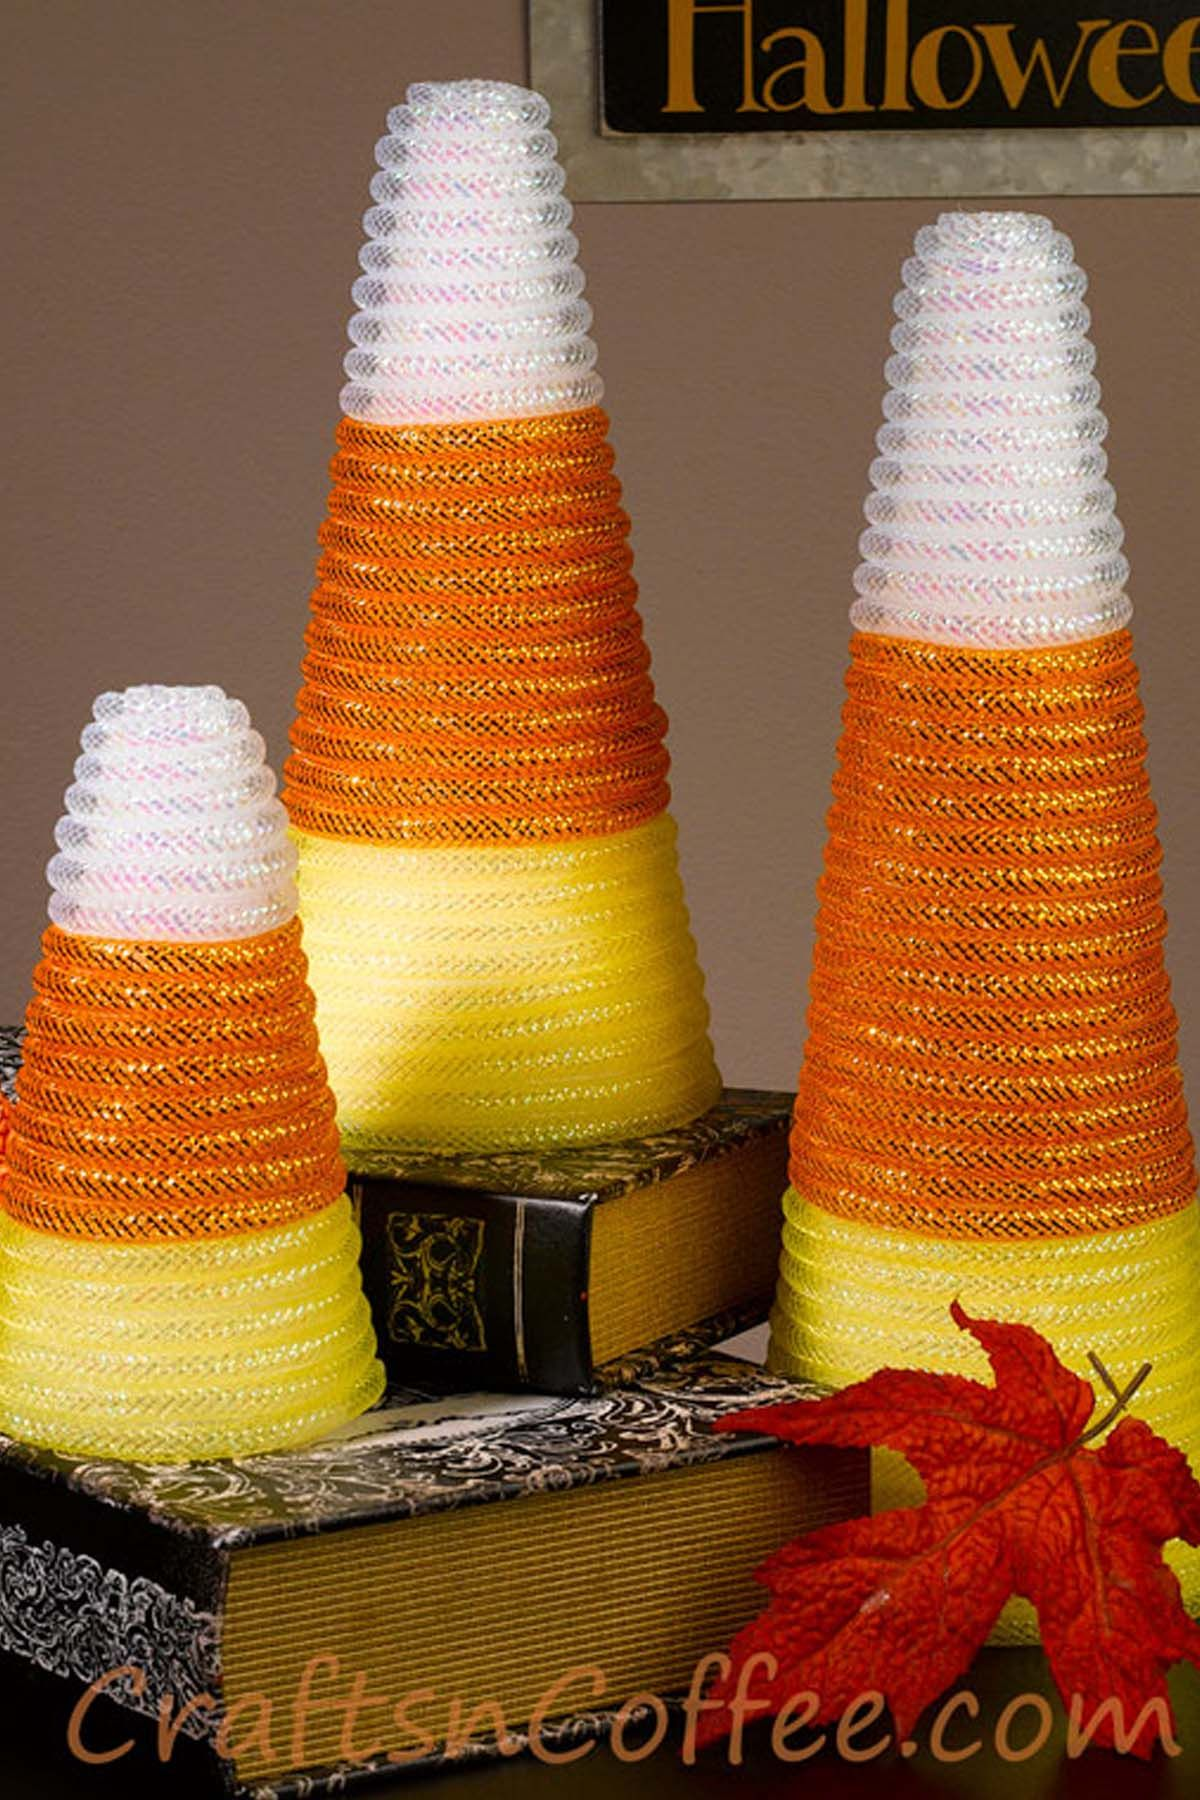 19 DIY Candy Corn Crafts That Double As Decor | Candy corn ...